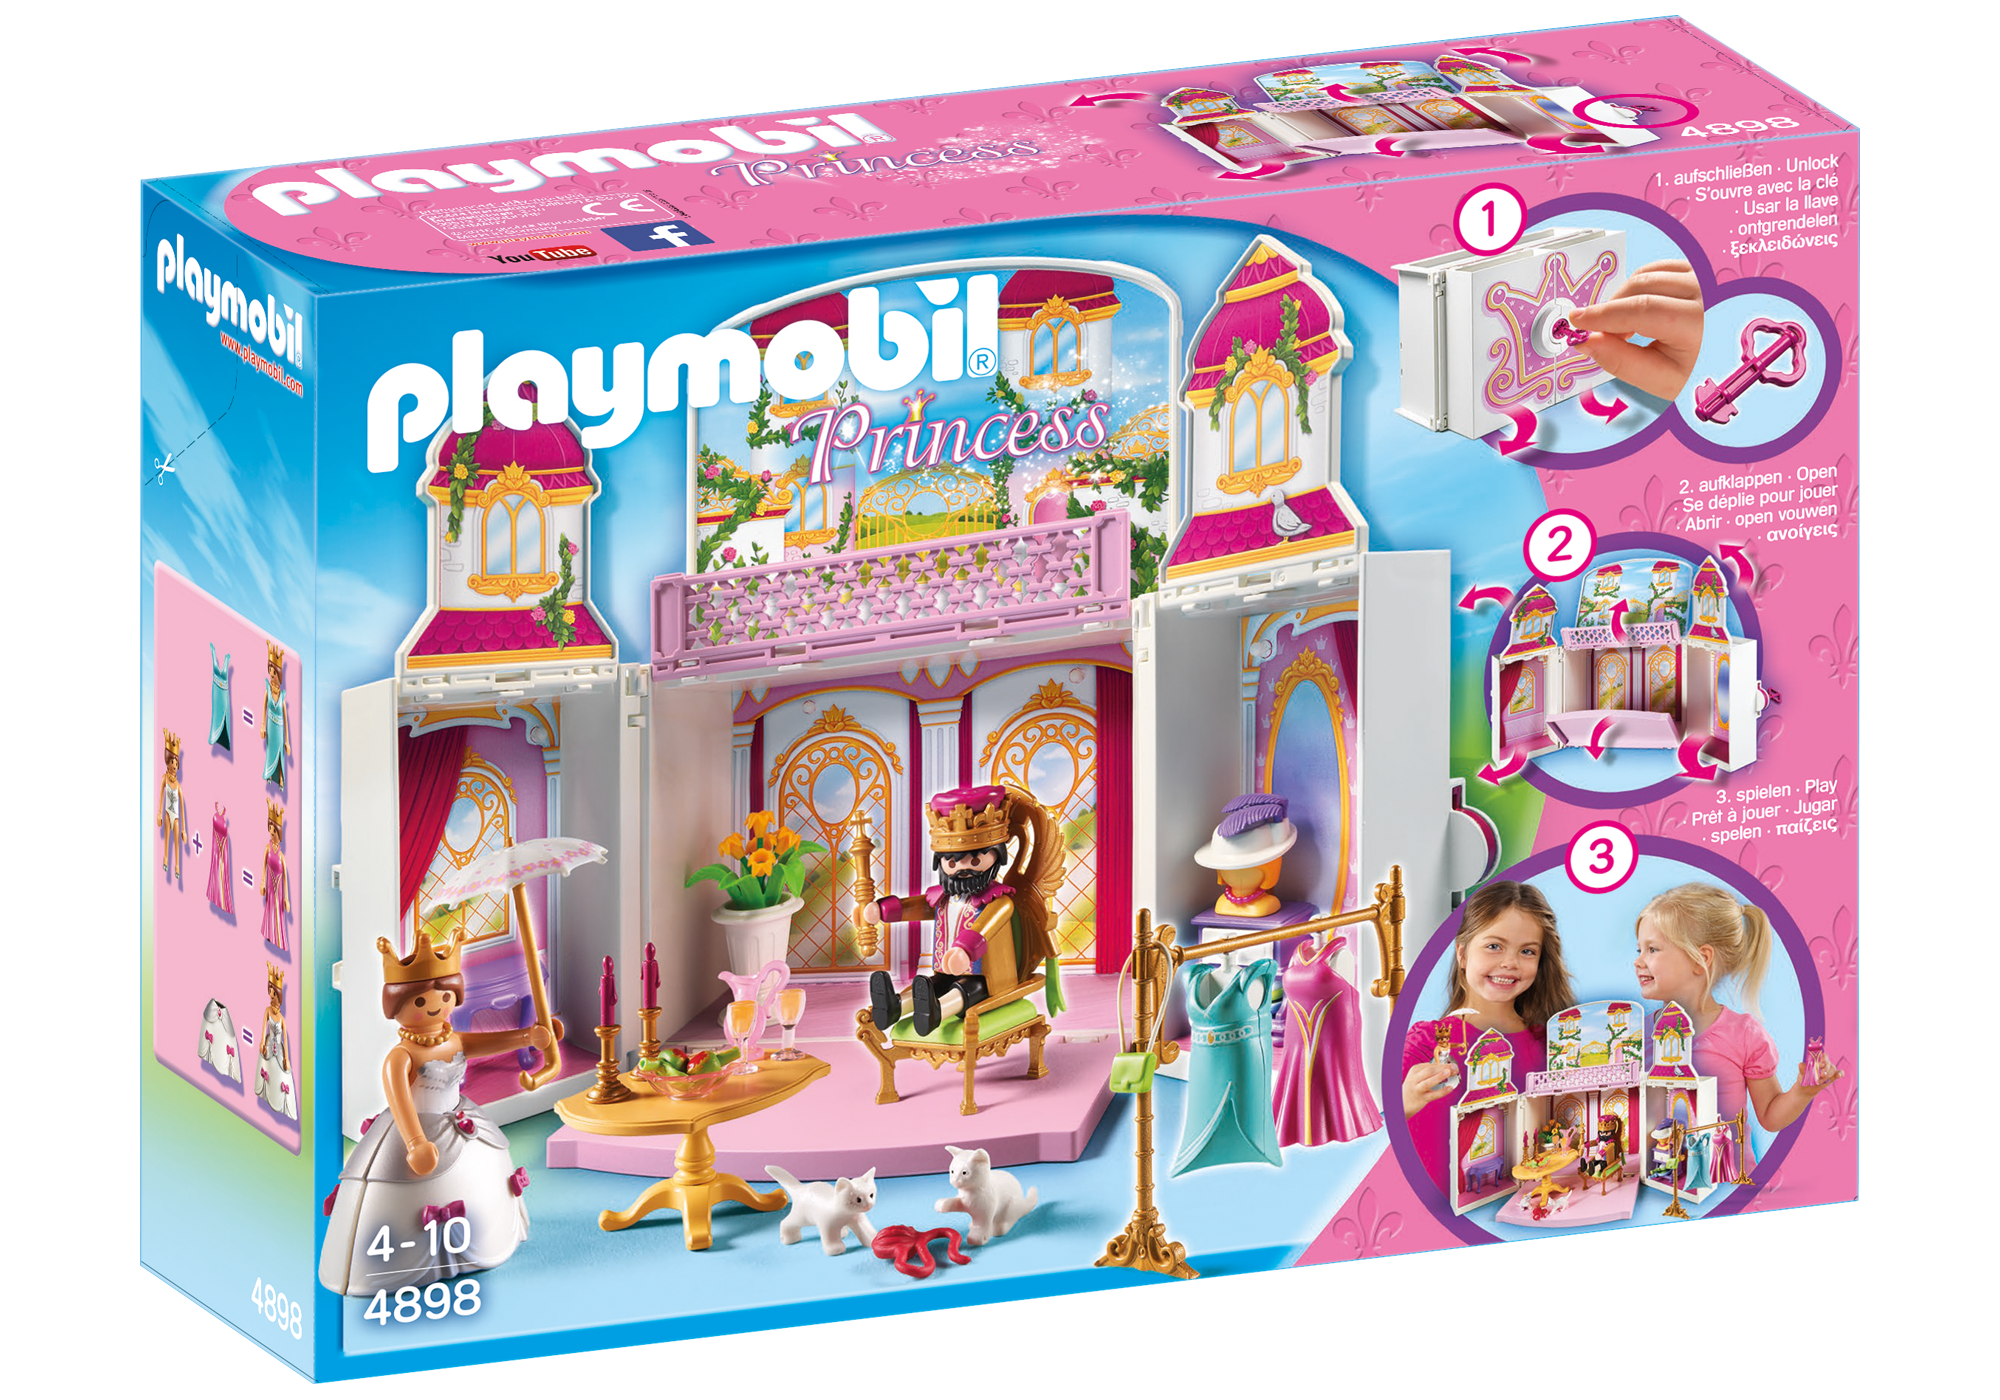 http://media.playmobil.com/i/playmobil/4898_product_box_front/My Secret Royal Palace Play Box